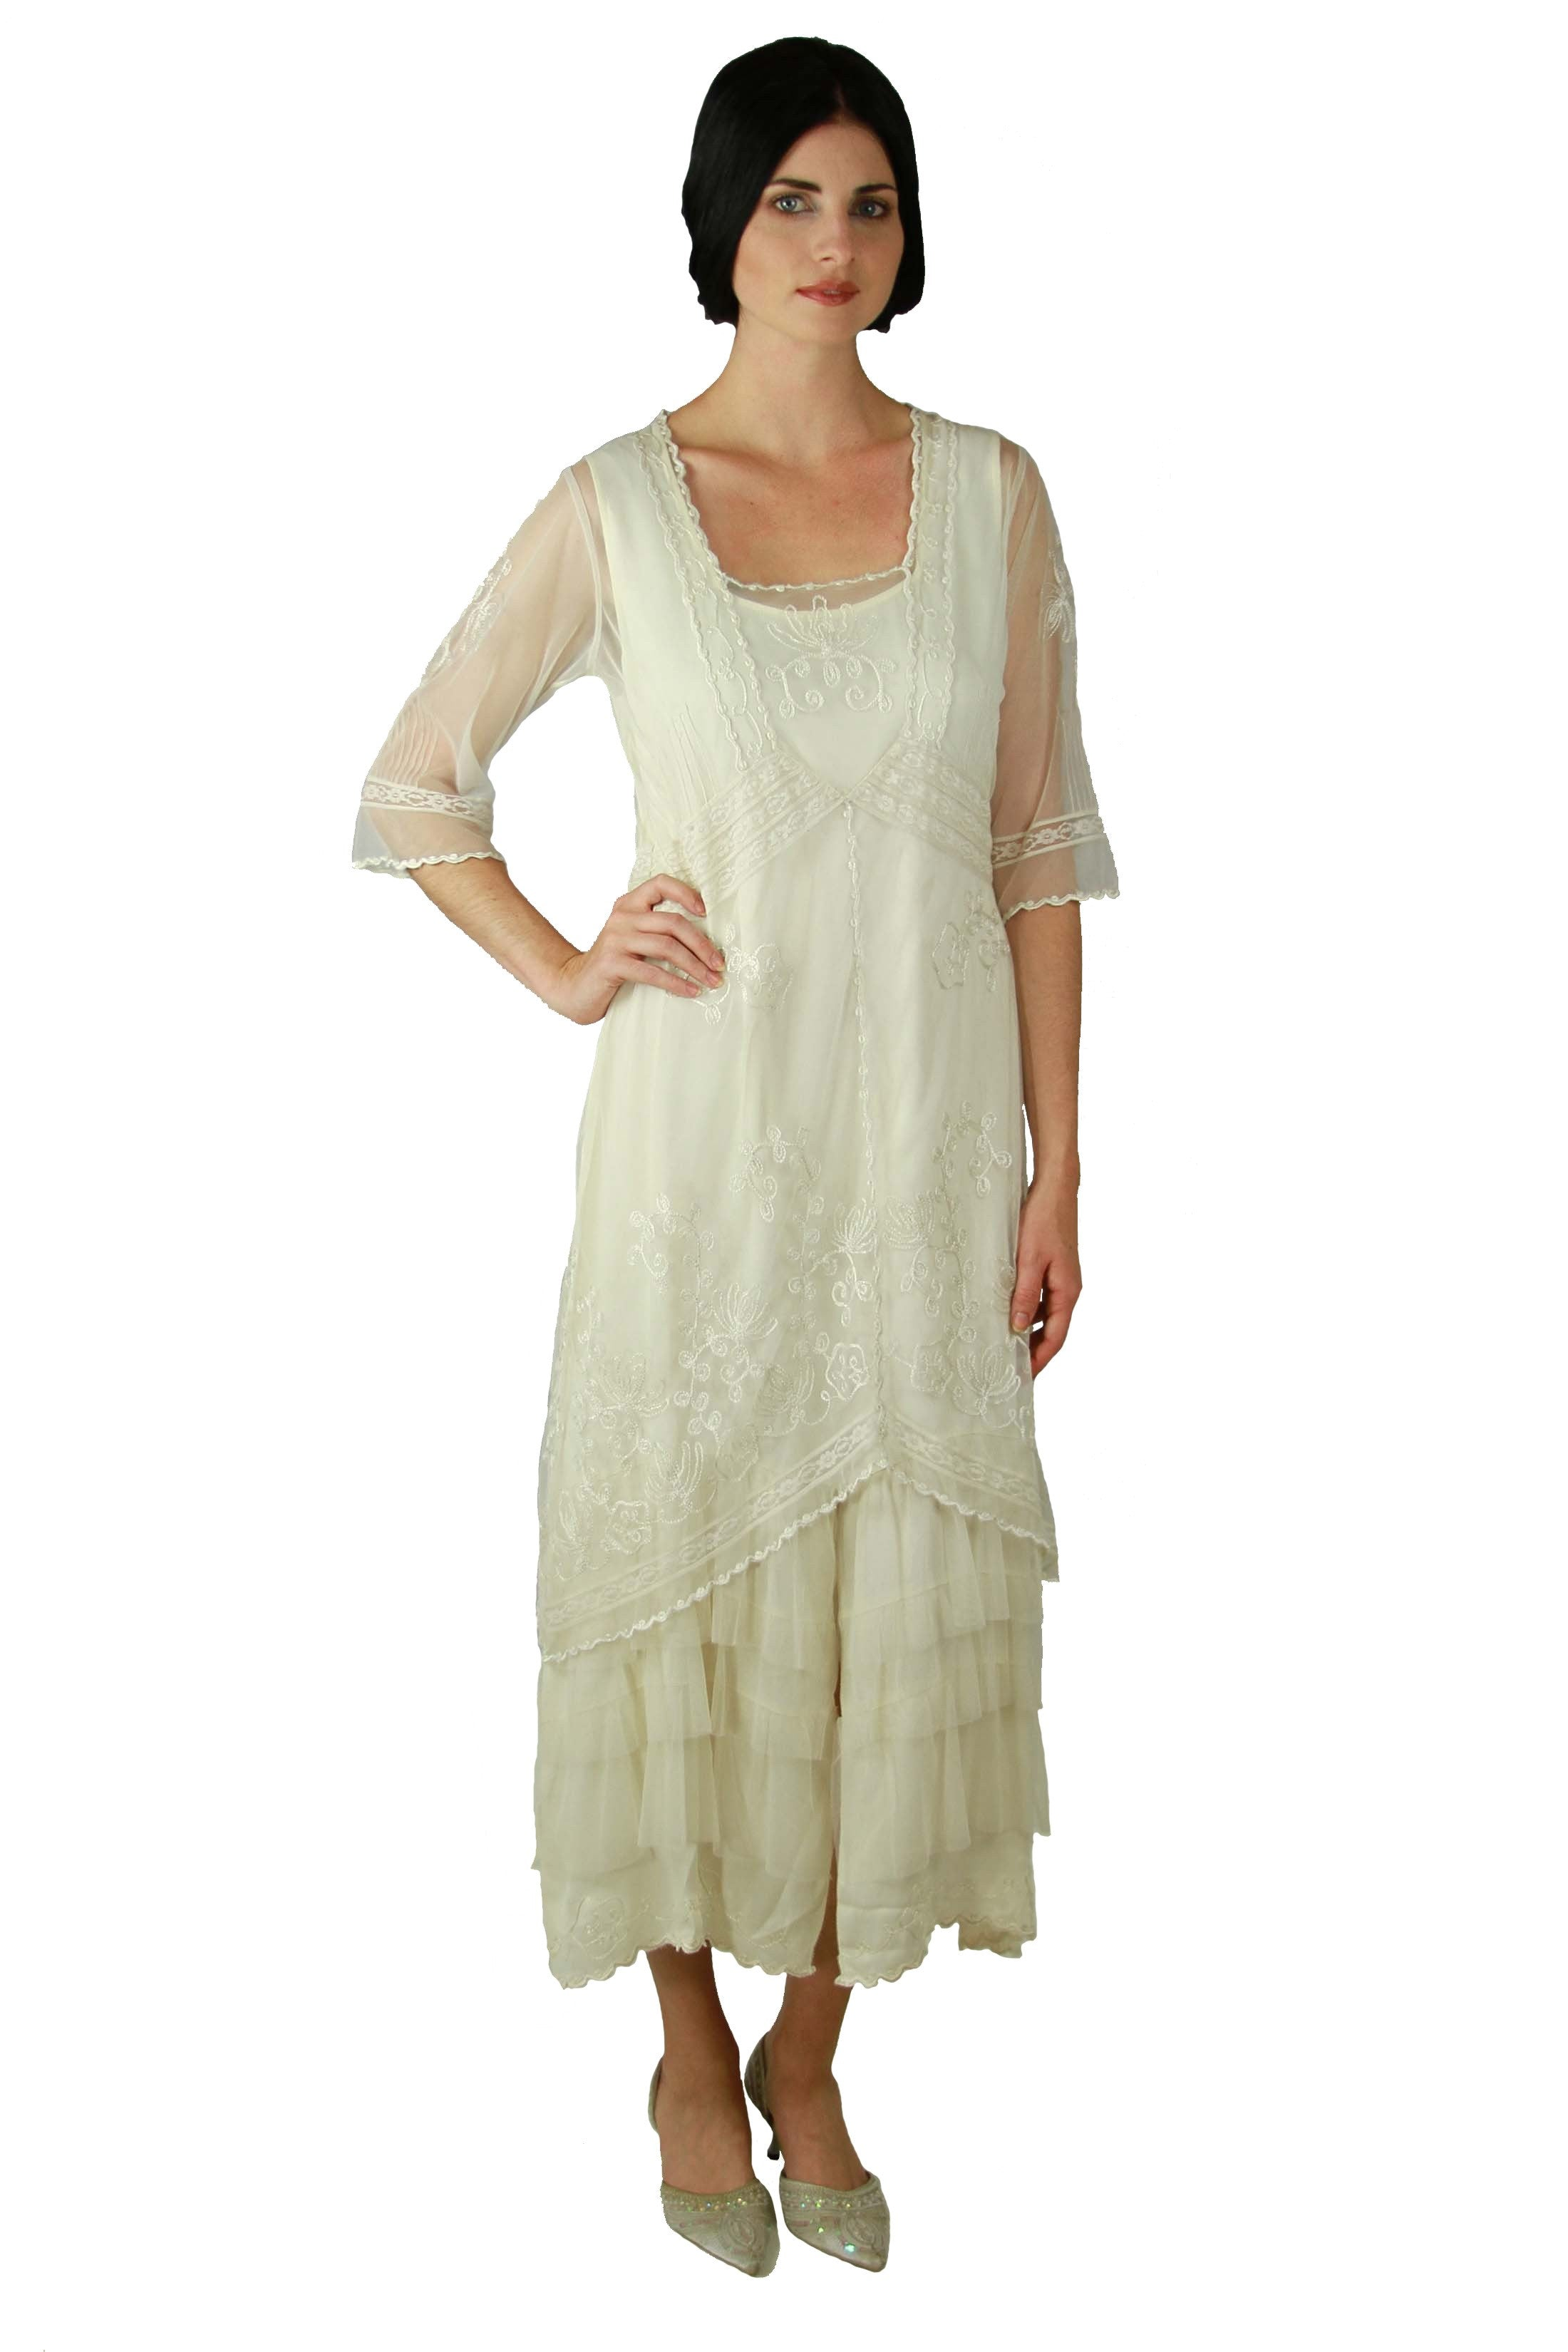 Victorian Wedding Dresses, Shoes, Accessories Titanic Tea Party Dress in Ivory by Nataya $228.00 AT vintagedancer.com